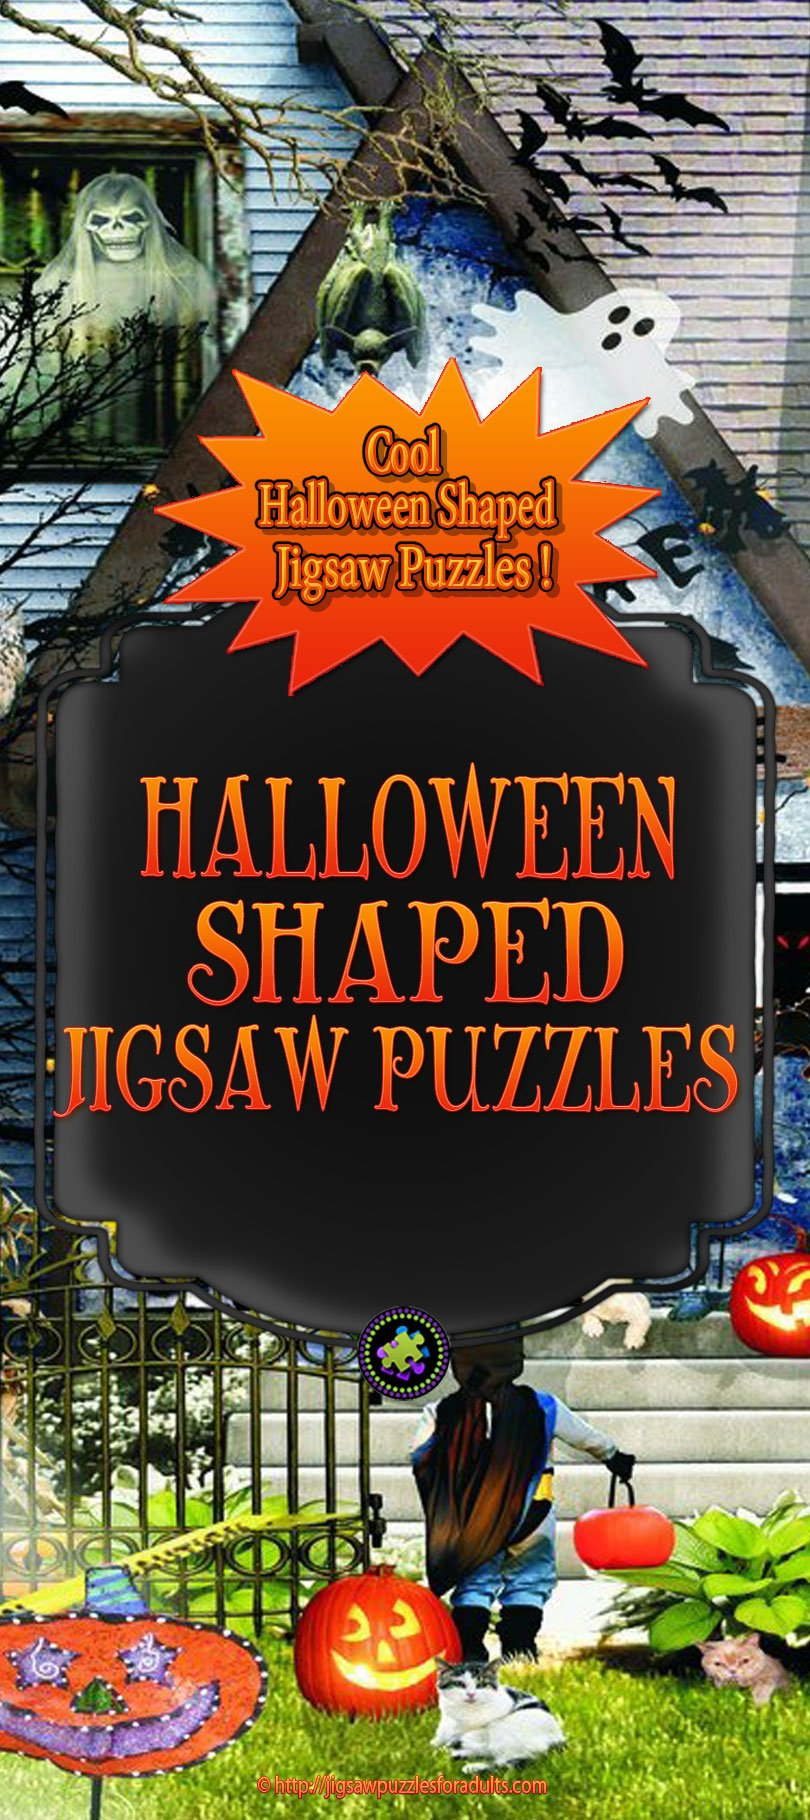 Halloween Shaped Jigsaw Puzzles